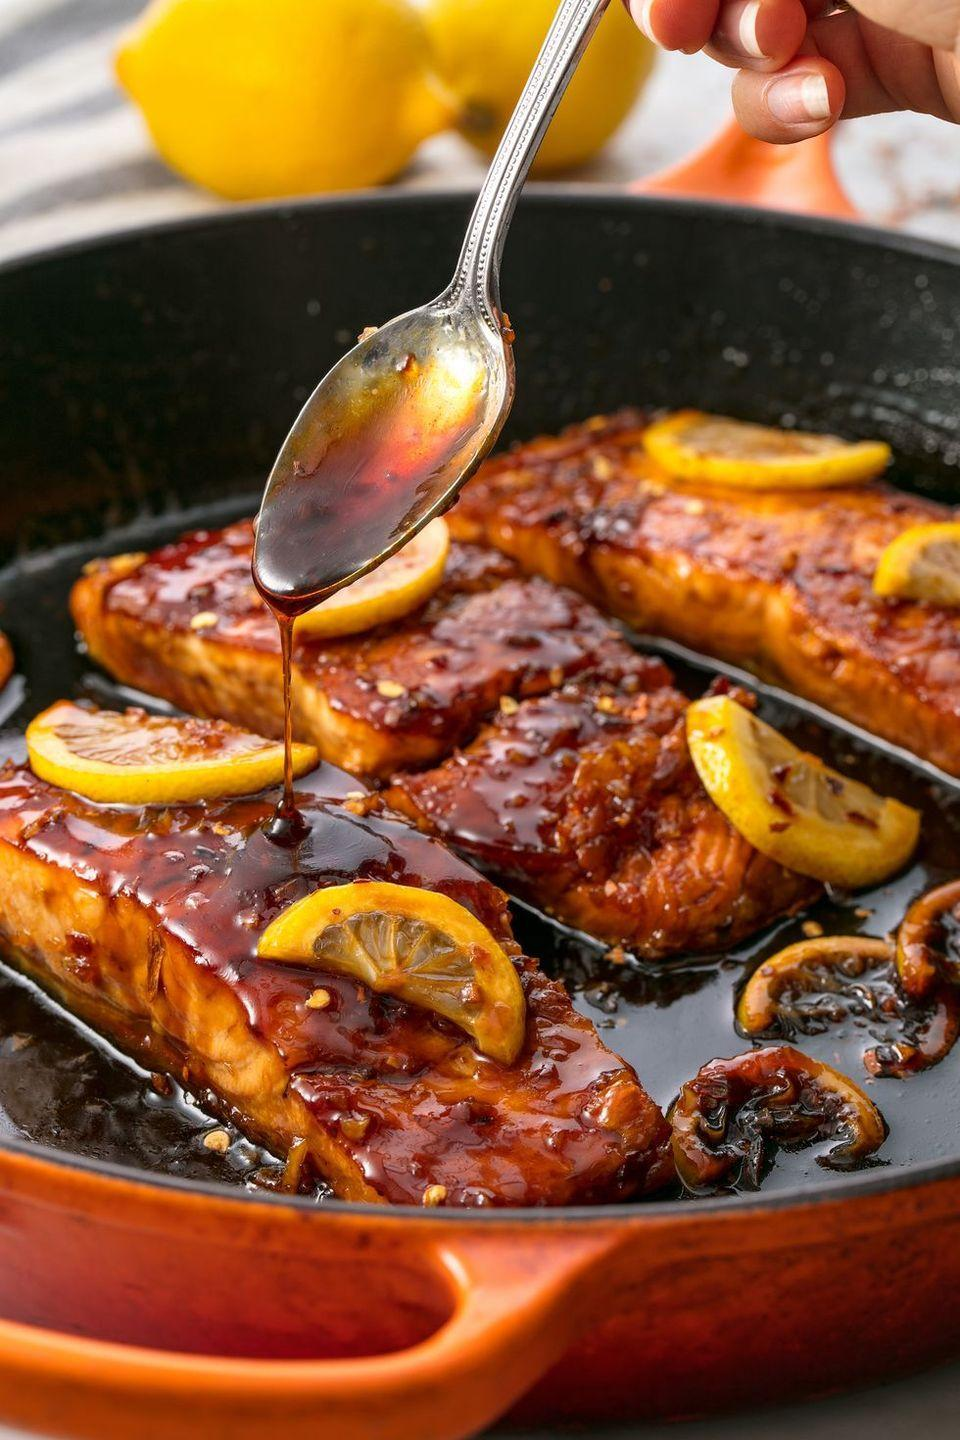 """<p>Searing fish might seem intimidating, but once you get the hang of it, it'll be second nature! It's important that you get your pan hot and the bottom of your pan thoroughly coated in oil.</p><p>Get the <a href=""""https://www.delish.com/uk/cooking/recipes/a28886105/honey-garlic-glazed-salmon-recipe/"""" rel=""""nofollow noopener"""" target=""""_blank"""" data-ylk=""""slk:Honey Garlic Glazed Salmon"""" class=""""link rapid-noclick-resp"""">Honey Garlic Glazed Salmon</a> recipe.</p>"""